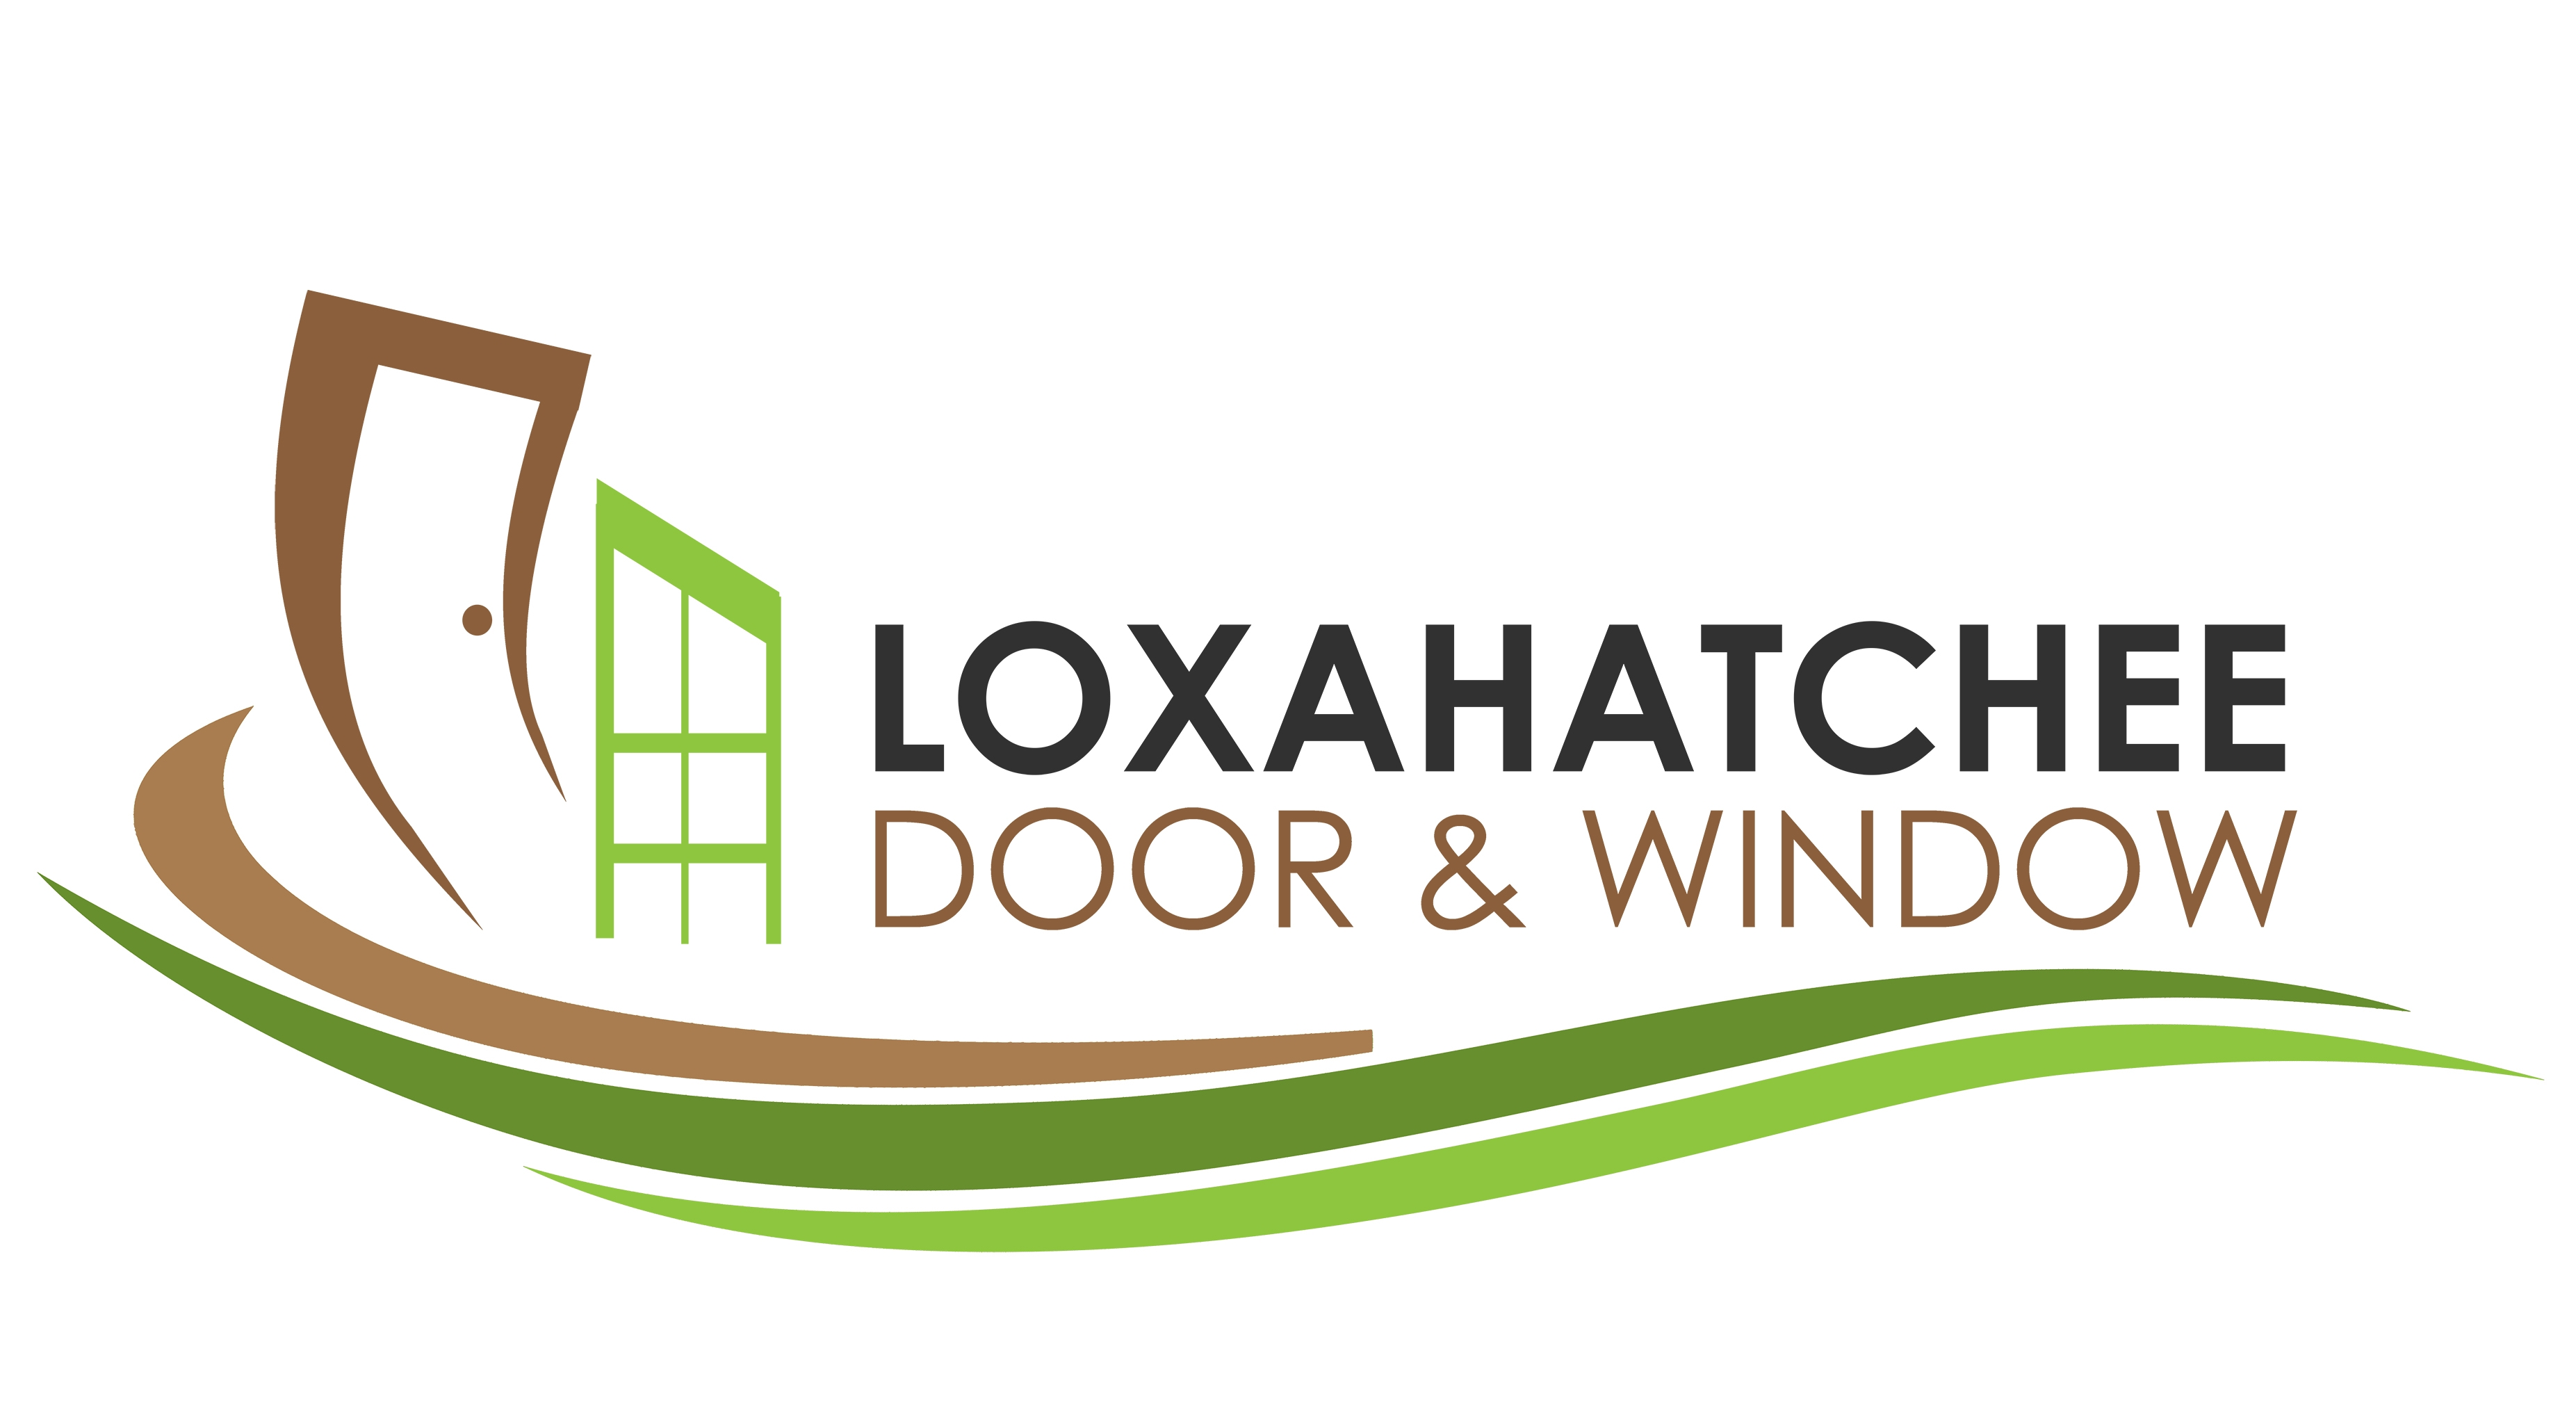 Loxahatchee Door and Window